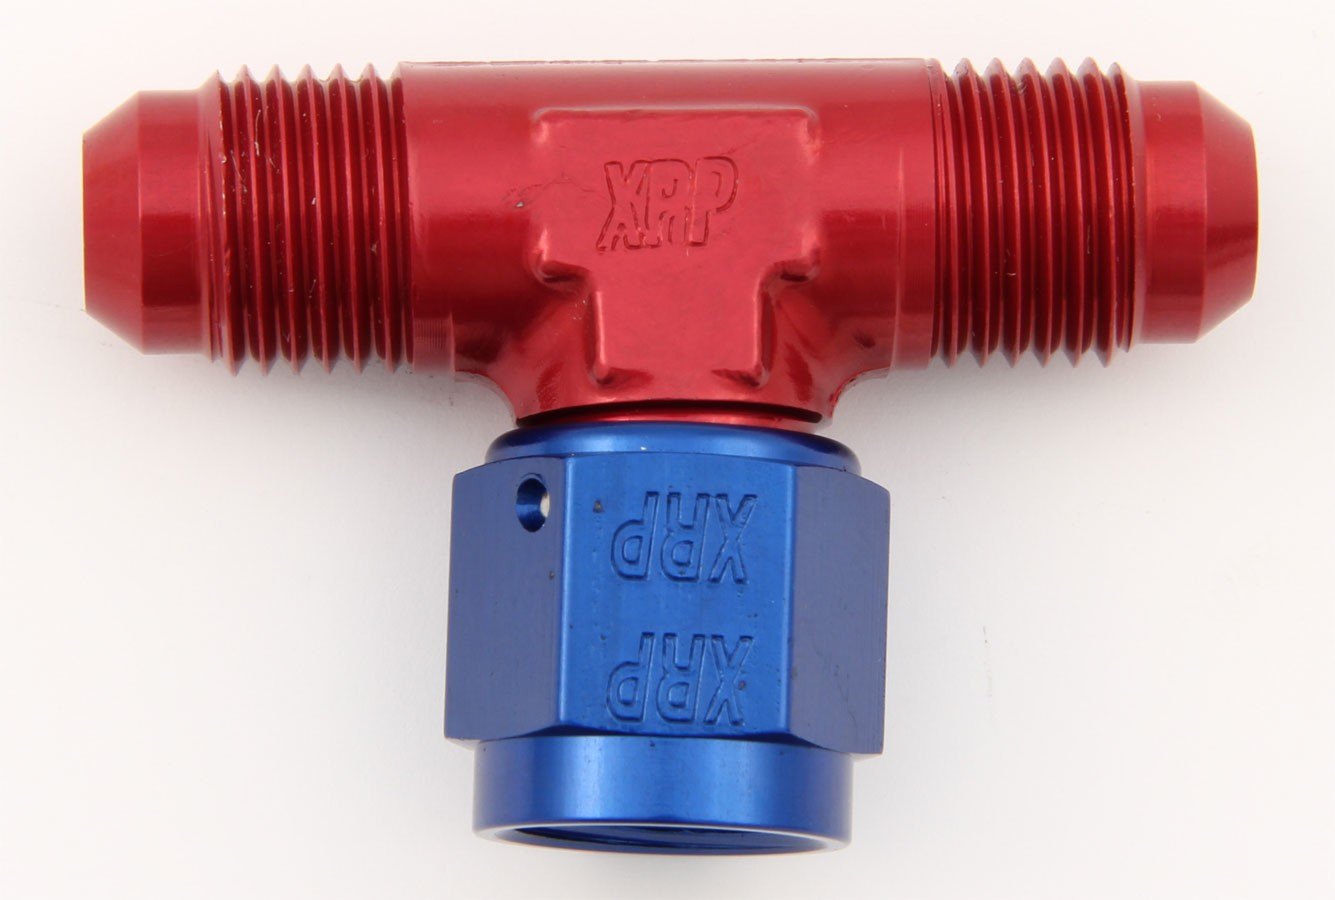 XRP 900204 Fitting, Adapter Tee, 4 AN Male x 4 AN Male, 4 AN Female Swivel, Aluminum, Blue / Red Anodize, Each